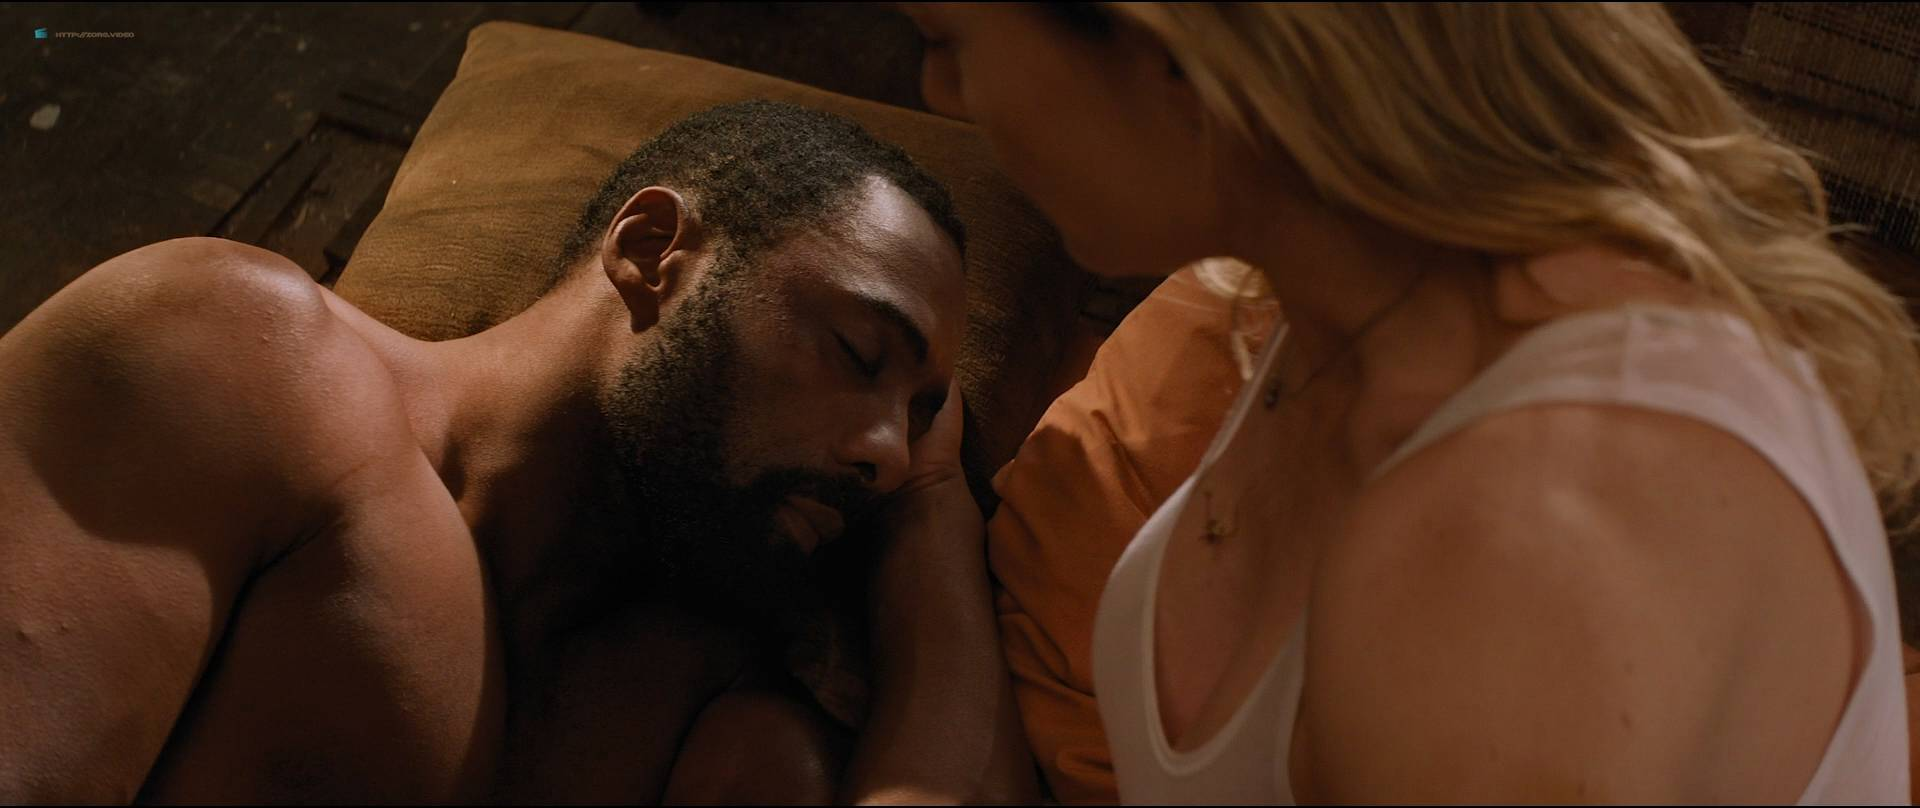 Kate Winslet Hot And Some Sex - The Mountain Between Us -3245